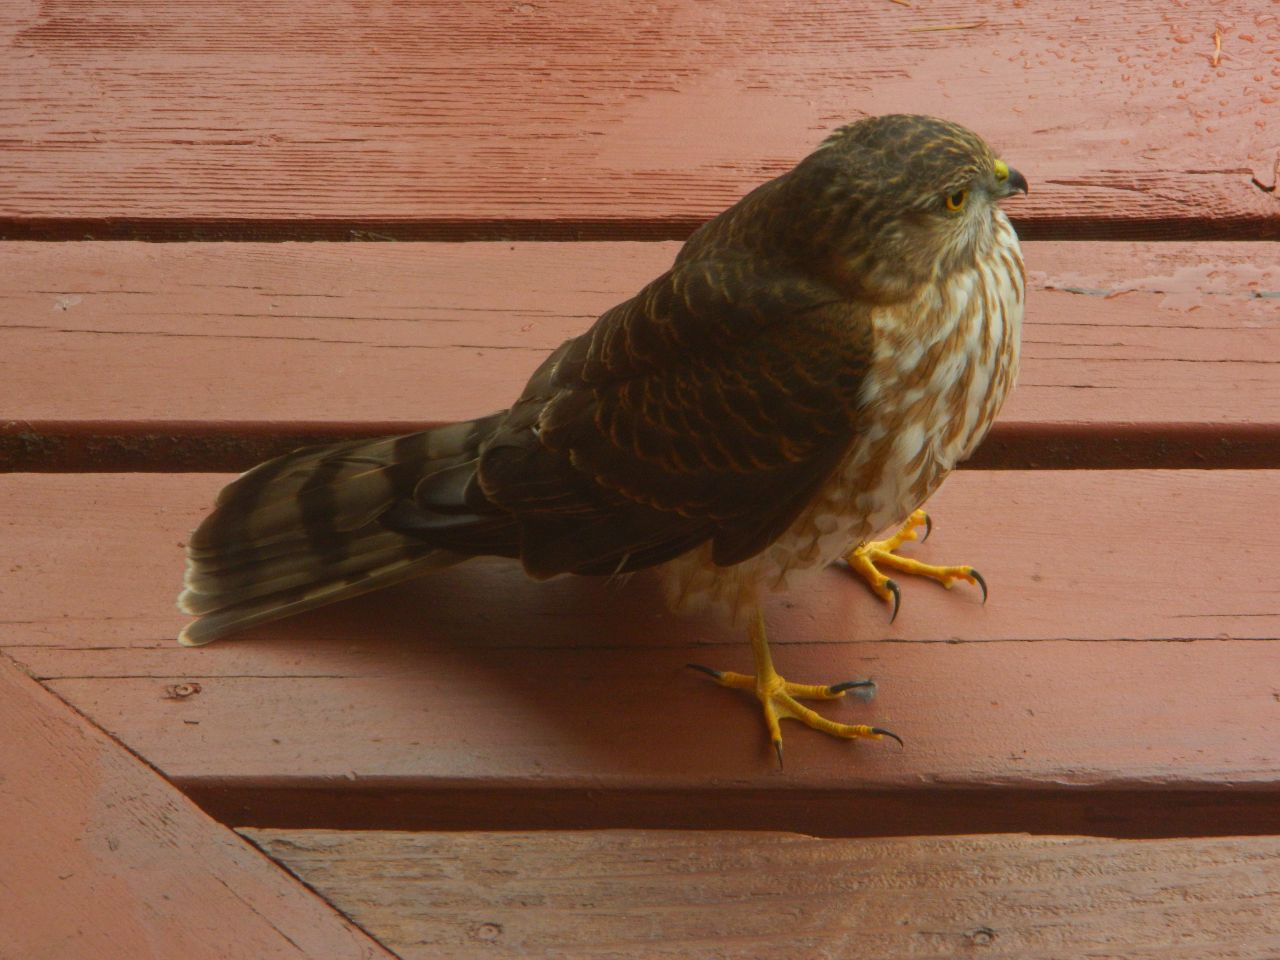 A stunned juvenile sharp-shinned hawk